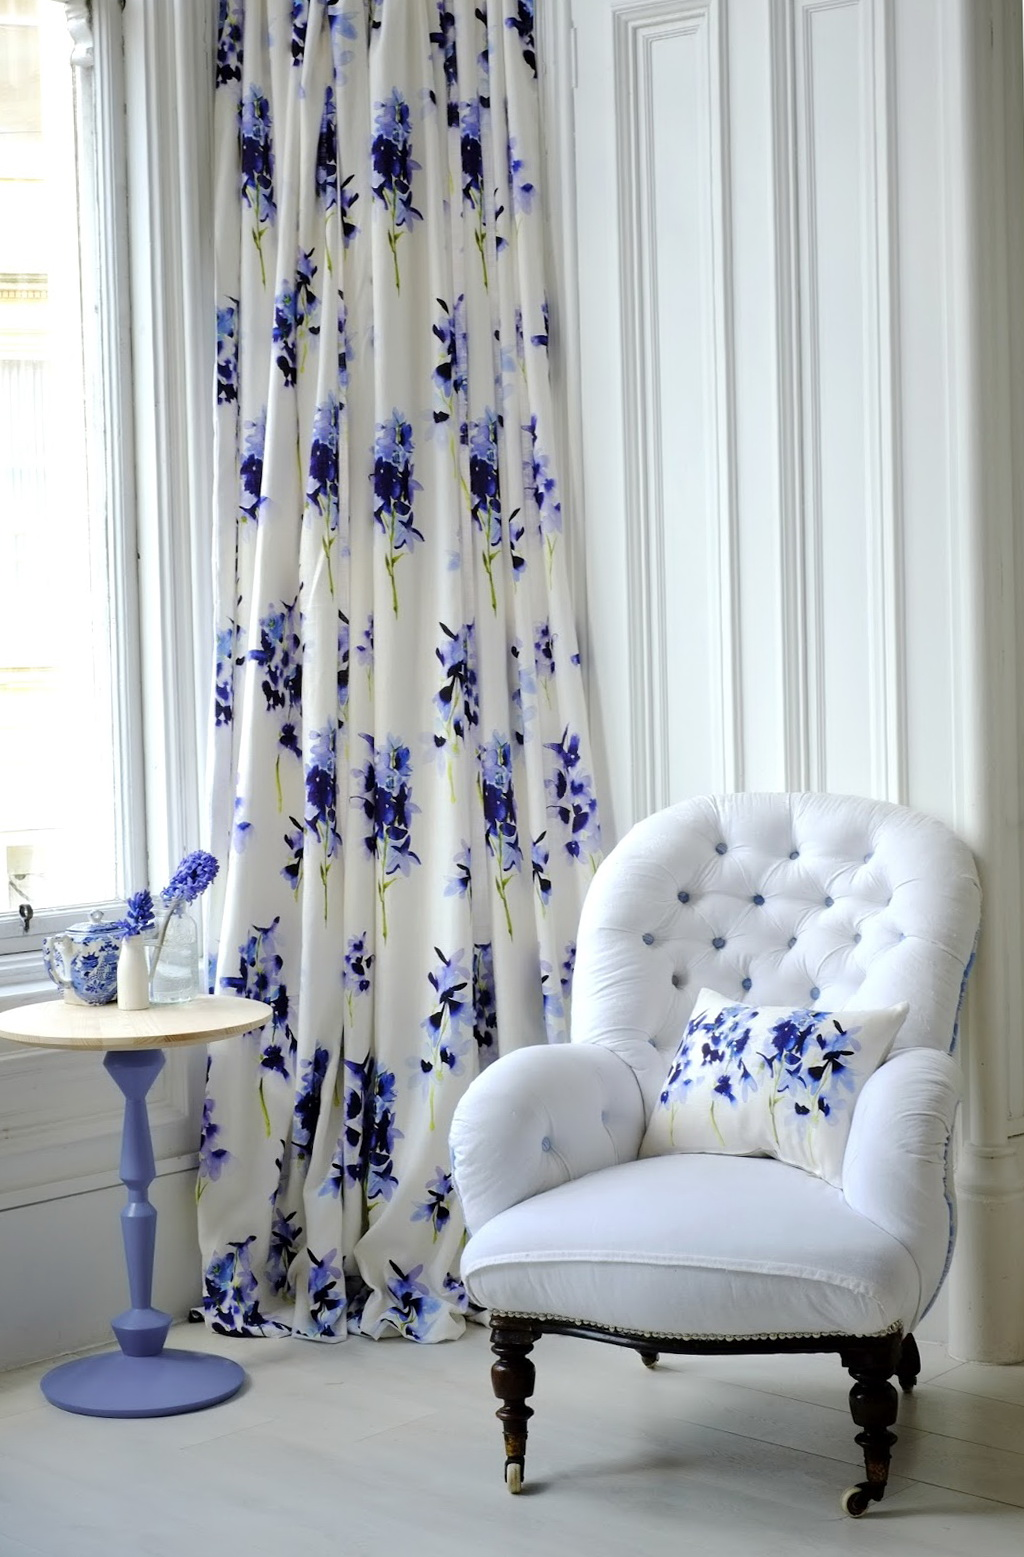 blue and white bedroom curtains home design ideas. Black Bedroom Furniture Sets. Home Design Ideas